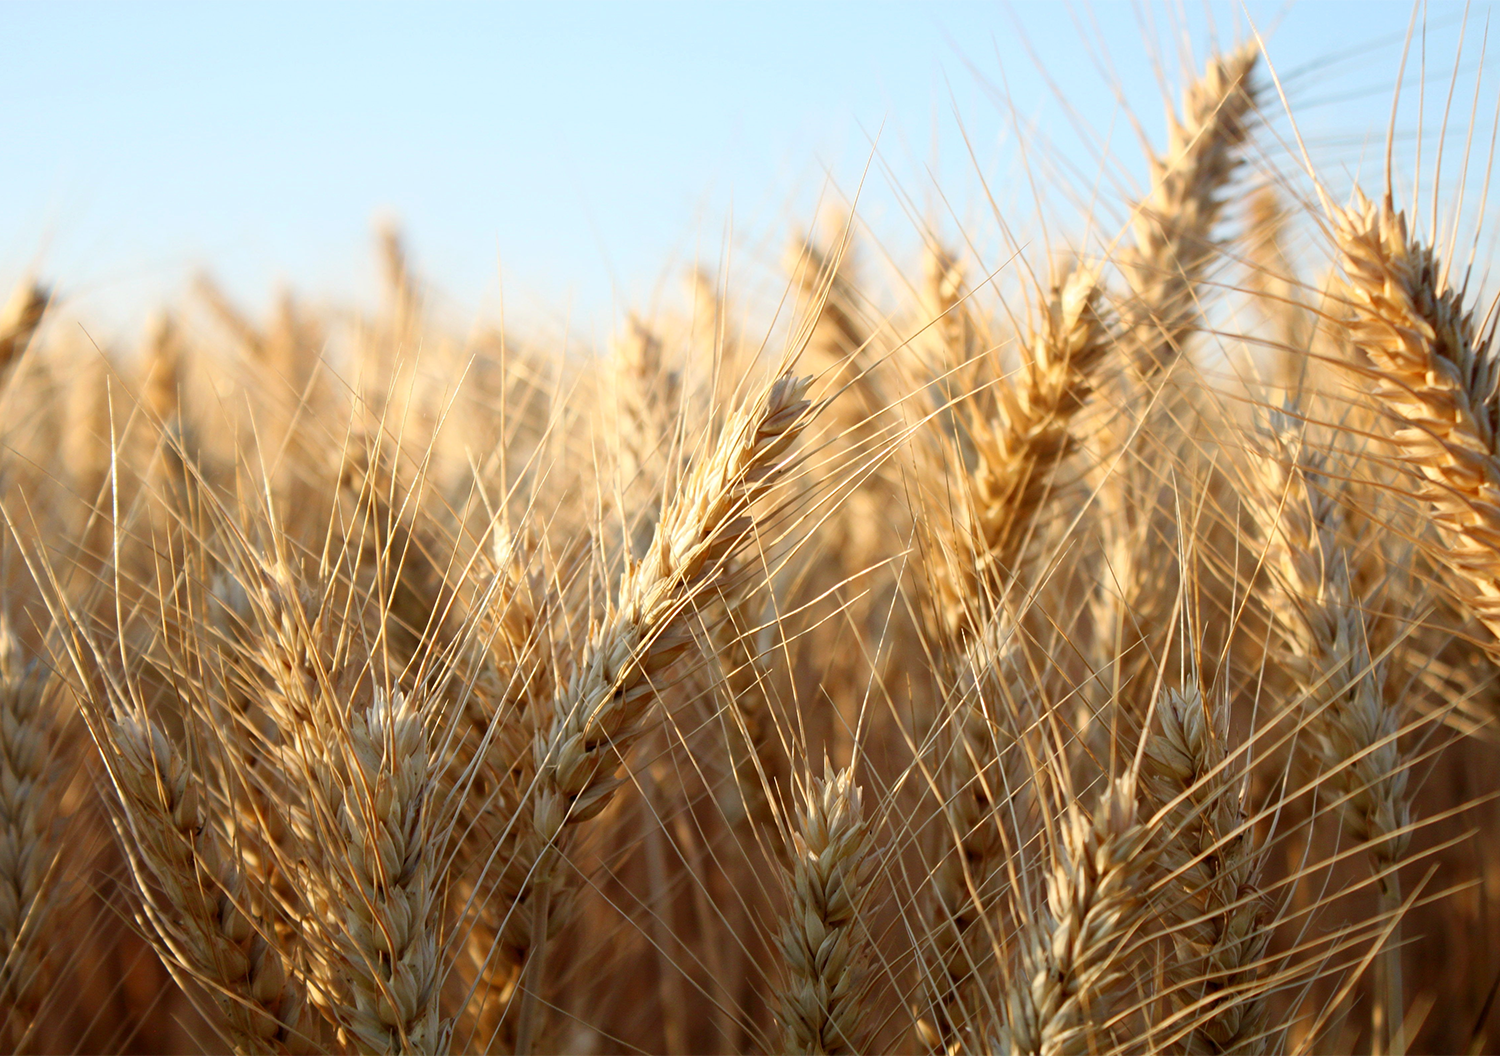 The barley tariff marks the first time China has applied such duties against Australia since the establishment of its trade remedy regime in 1997. Image: Shutterstock.